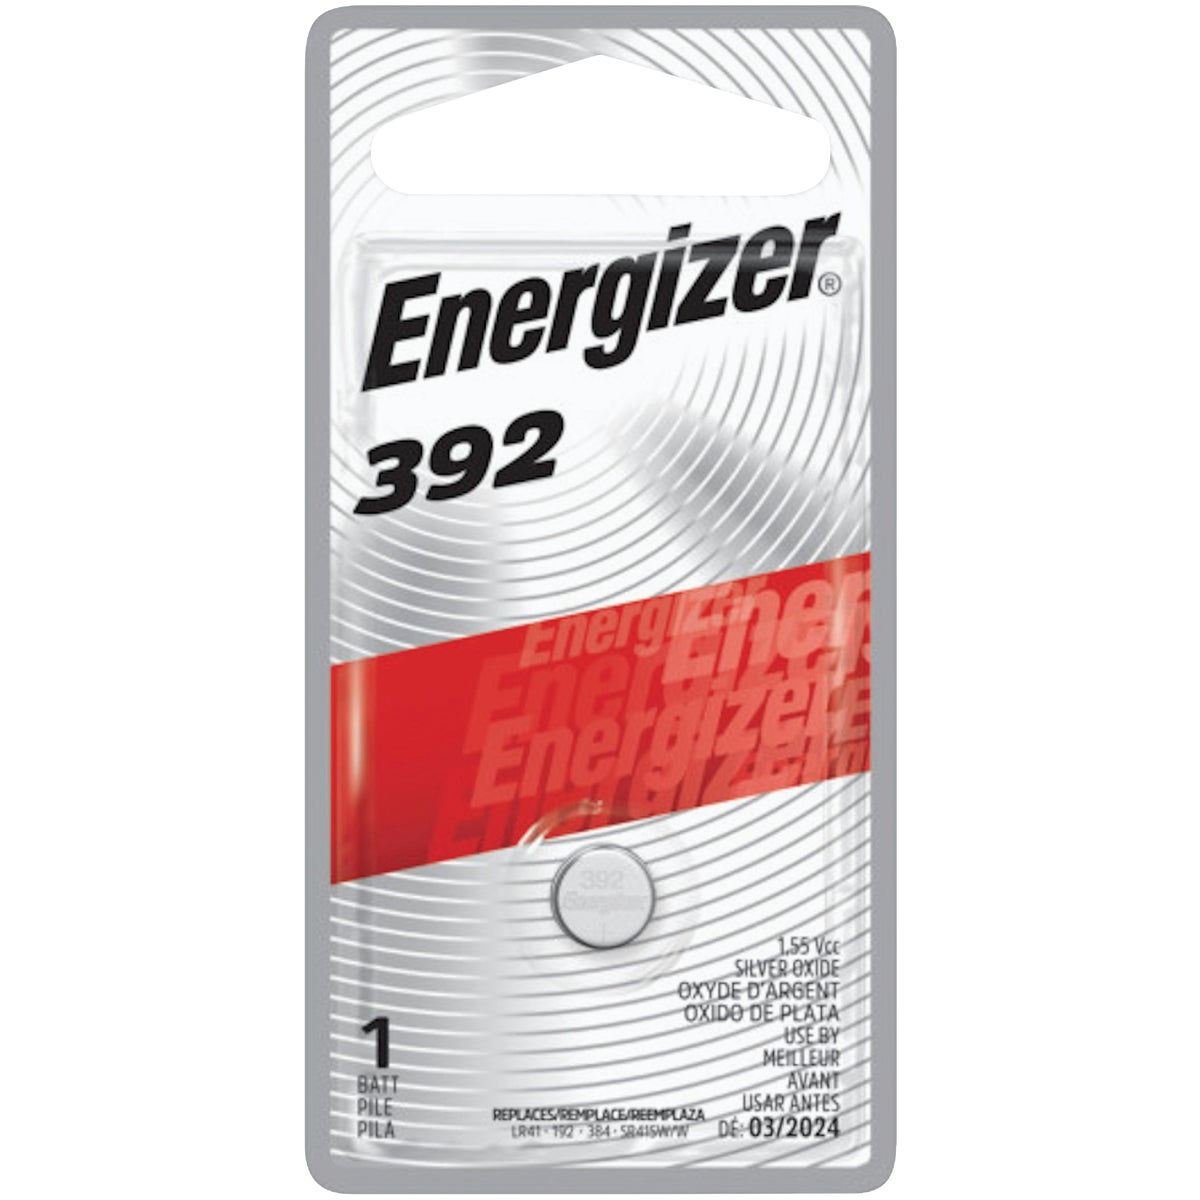 1.6V WATCH BATTERY - 392BPZ by Energizer